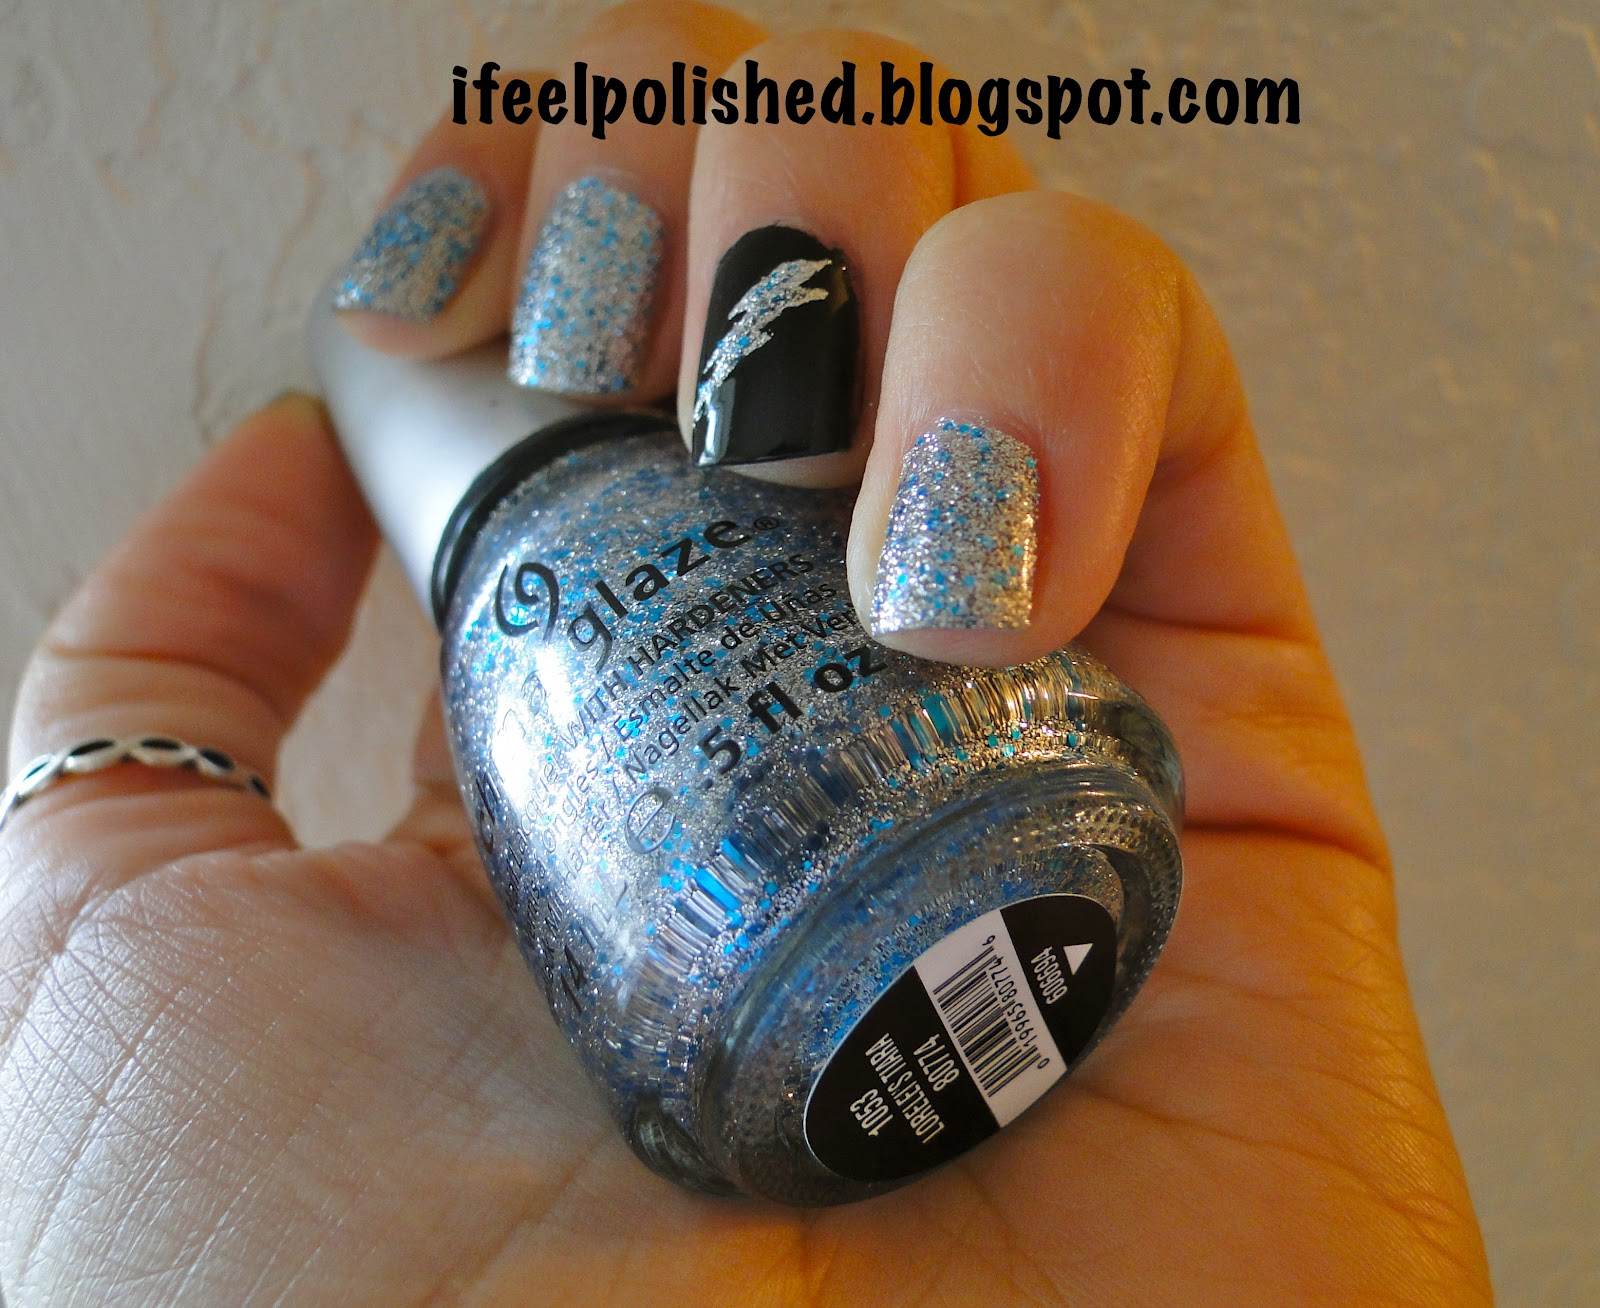 I Feel Polished!: Lorelei\'s Tiara and Tampa Bay Lightning!